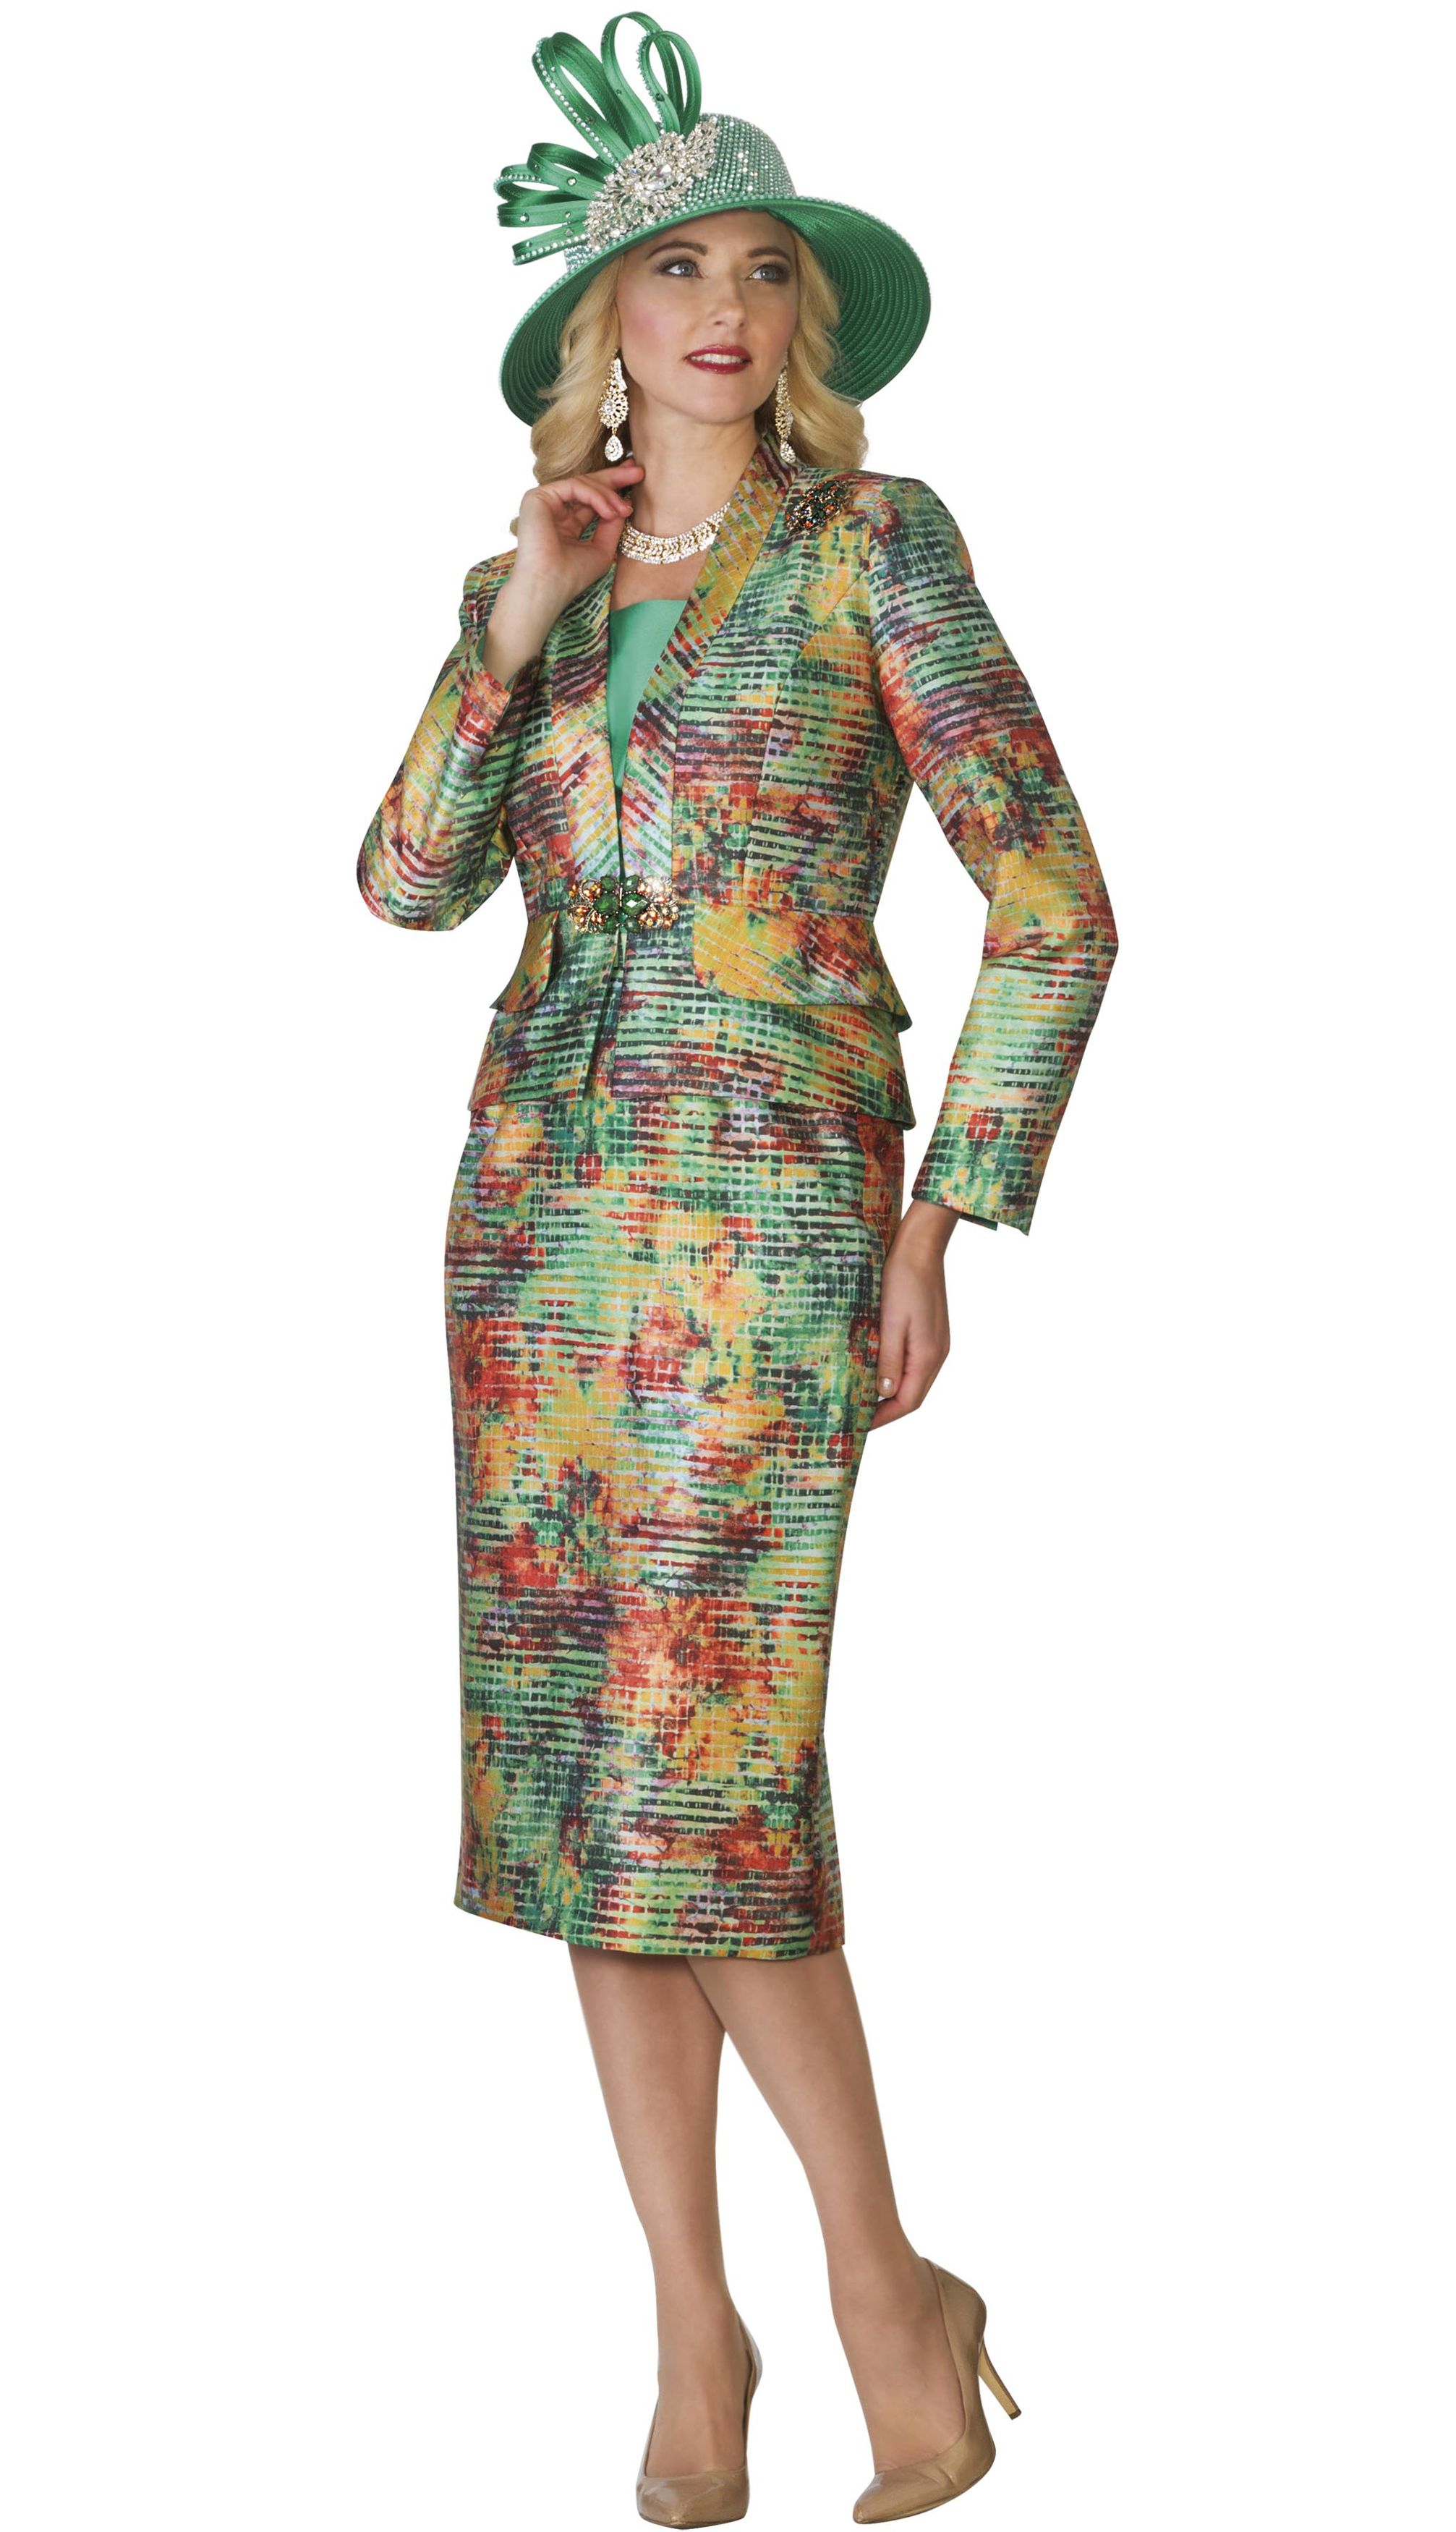 78534ff03ed11a Style Lily and Taylor 4097 3 Piece Multi Color Womens Skirt Suit With Vee  Neckline Colors Jade With Multi Sizes 4 6 8 10 12 14 16 18 20 22 24